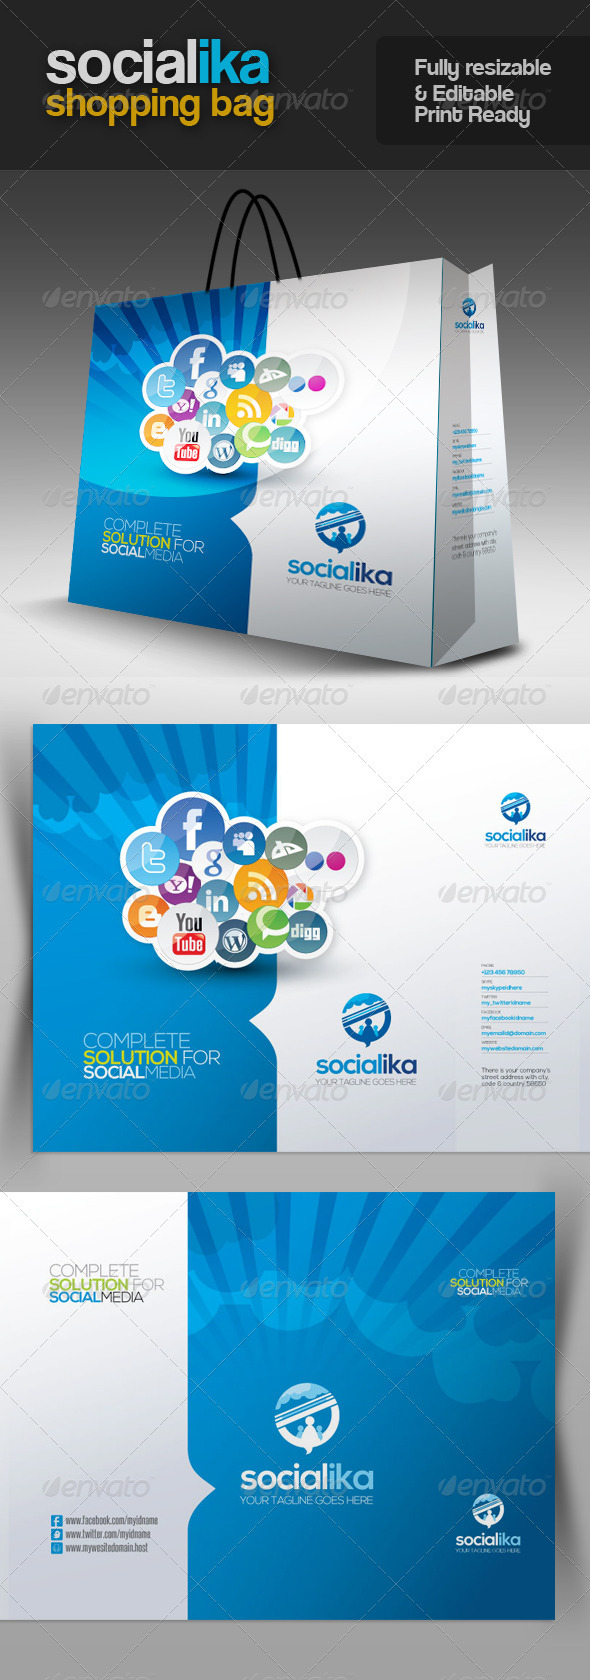 Socialika Social Media Shopping Bag - Packaging Print Templates